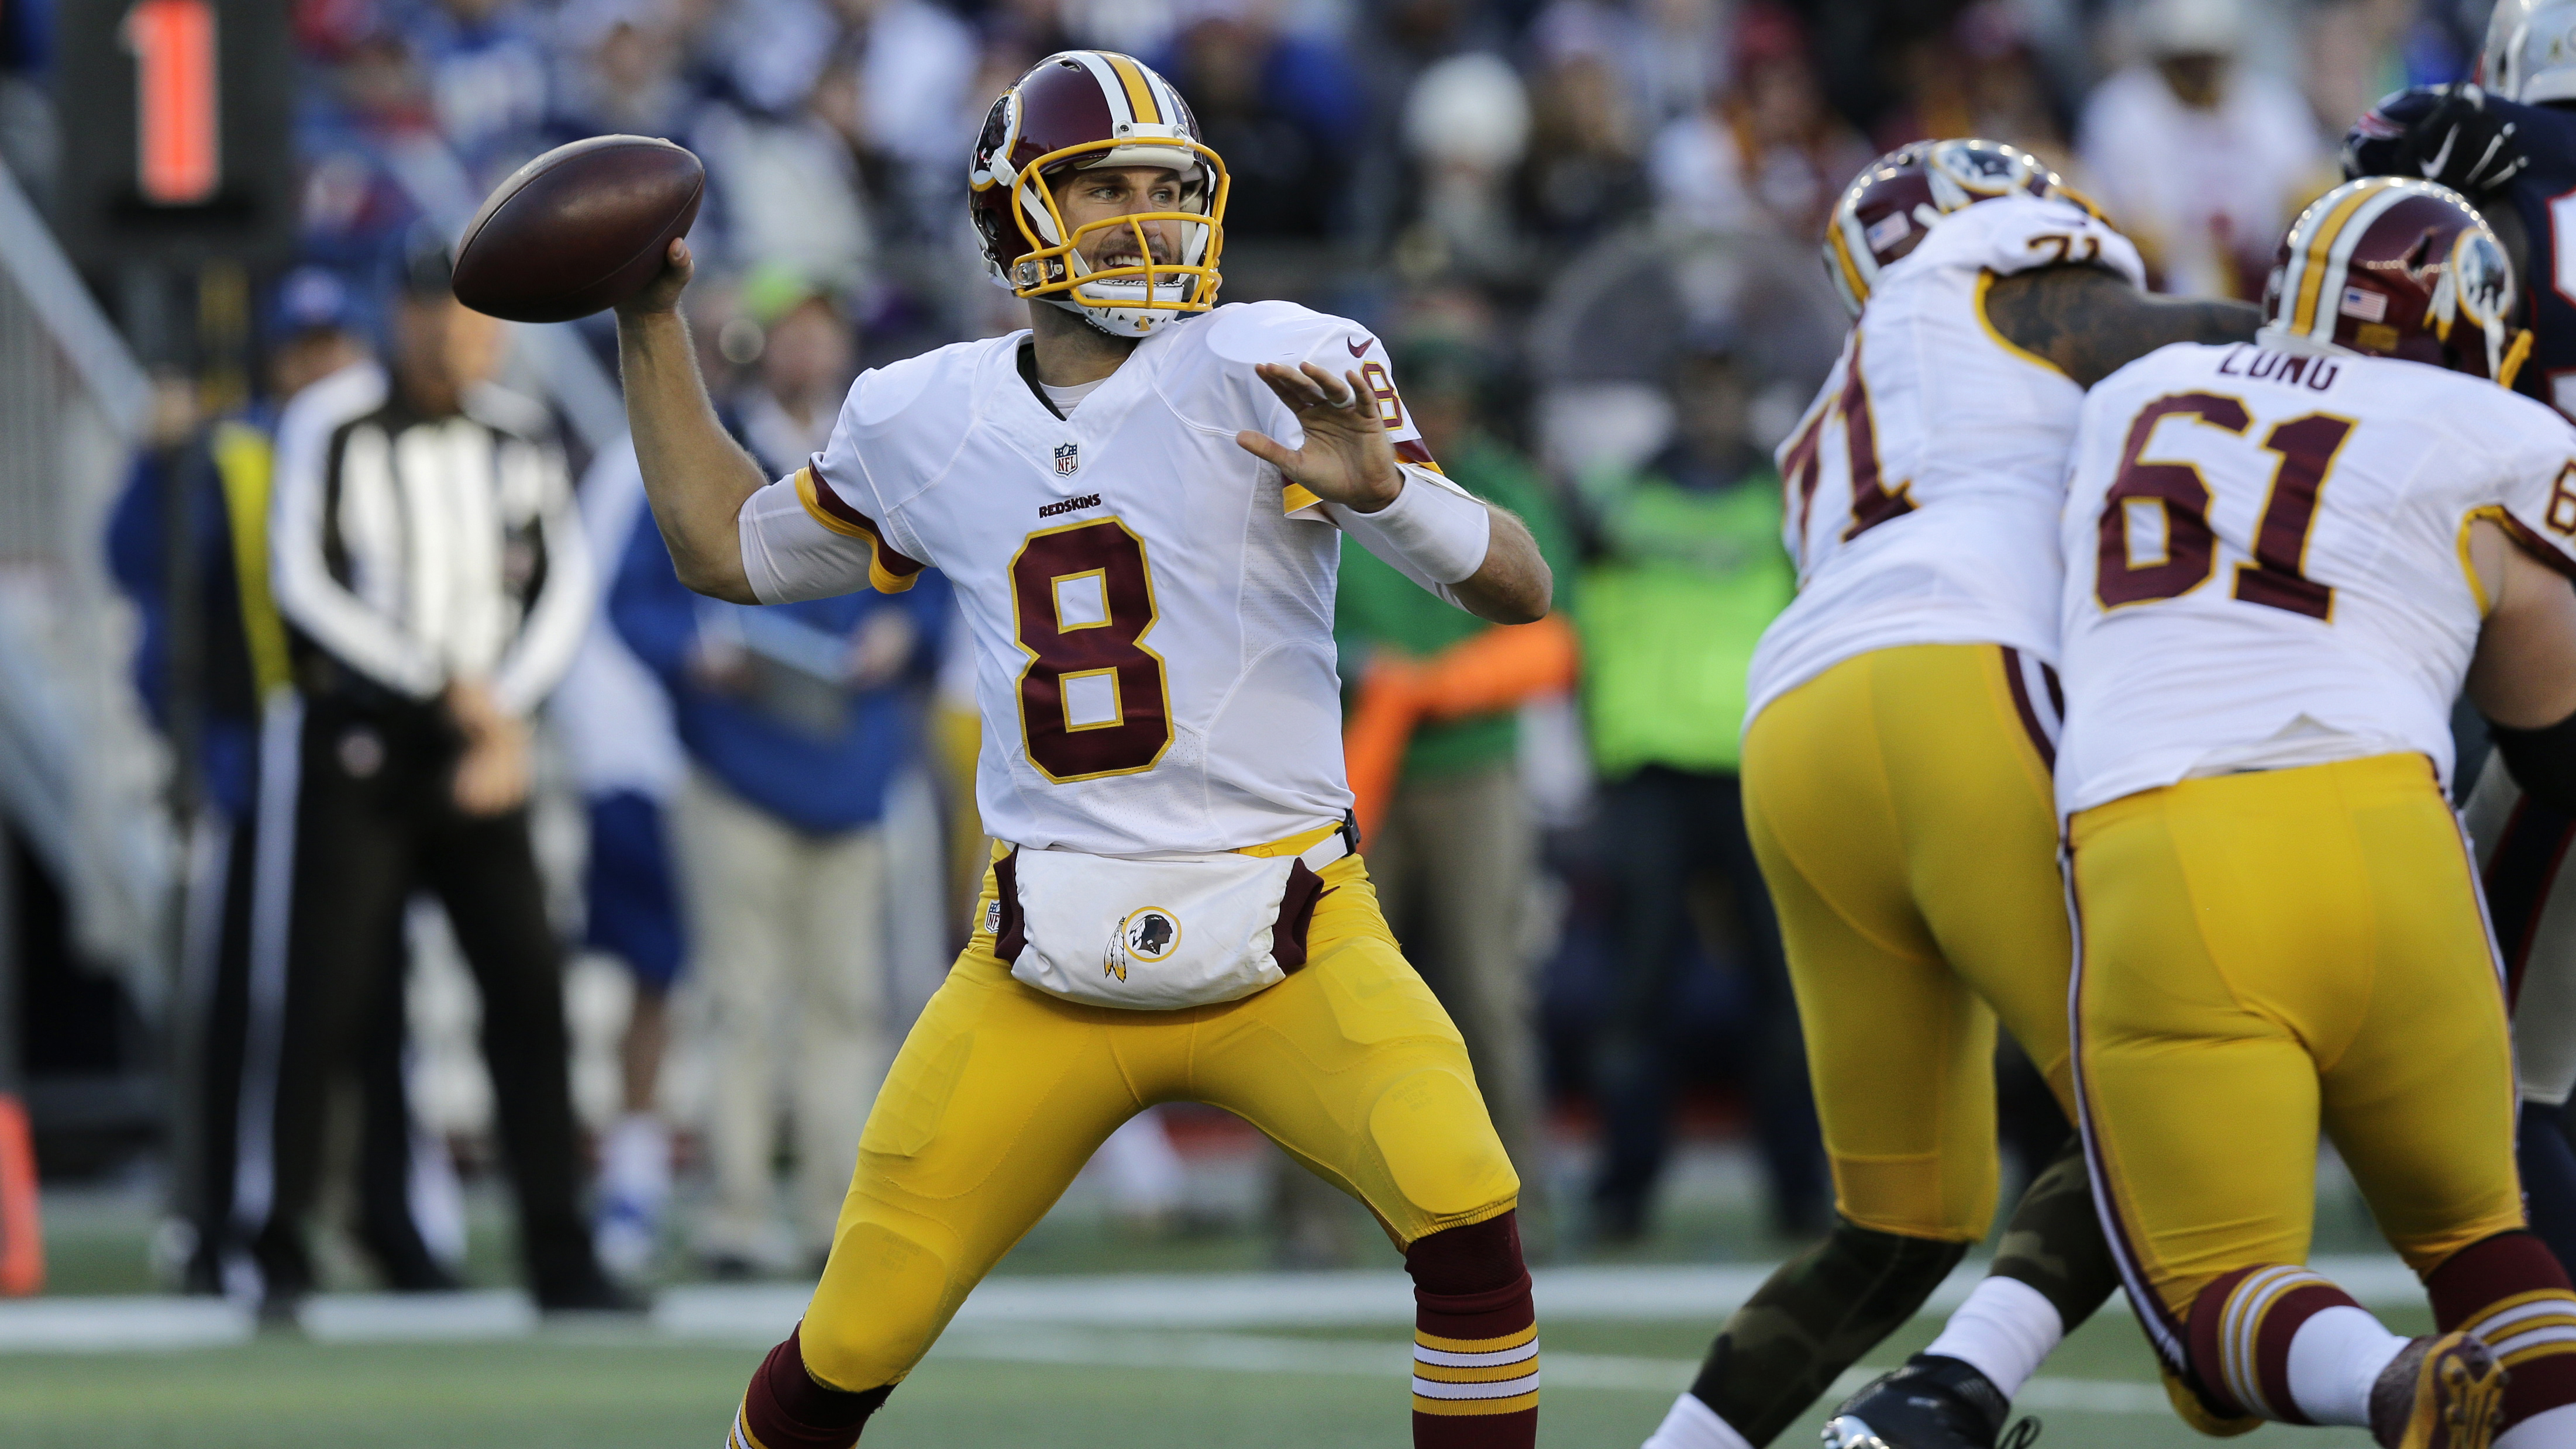 In this photo taken Nov. 8, 2015, Washington Redskins quarterback Kirk Cousins (8) throws during the second half of an NFL football game against the New England Patriots in Foxborough, Mass. Now that Kirk Cousins has his first four-TD game and his first p